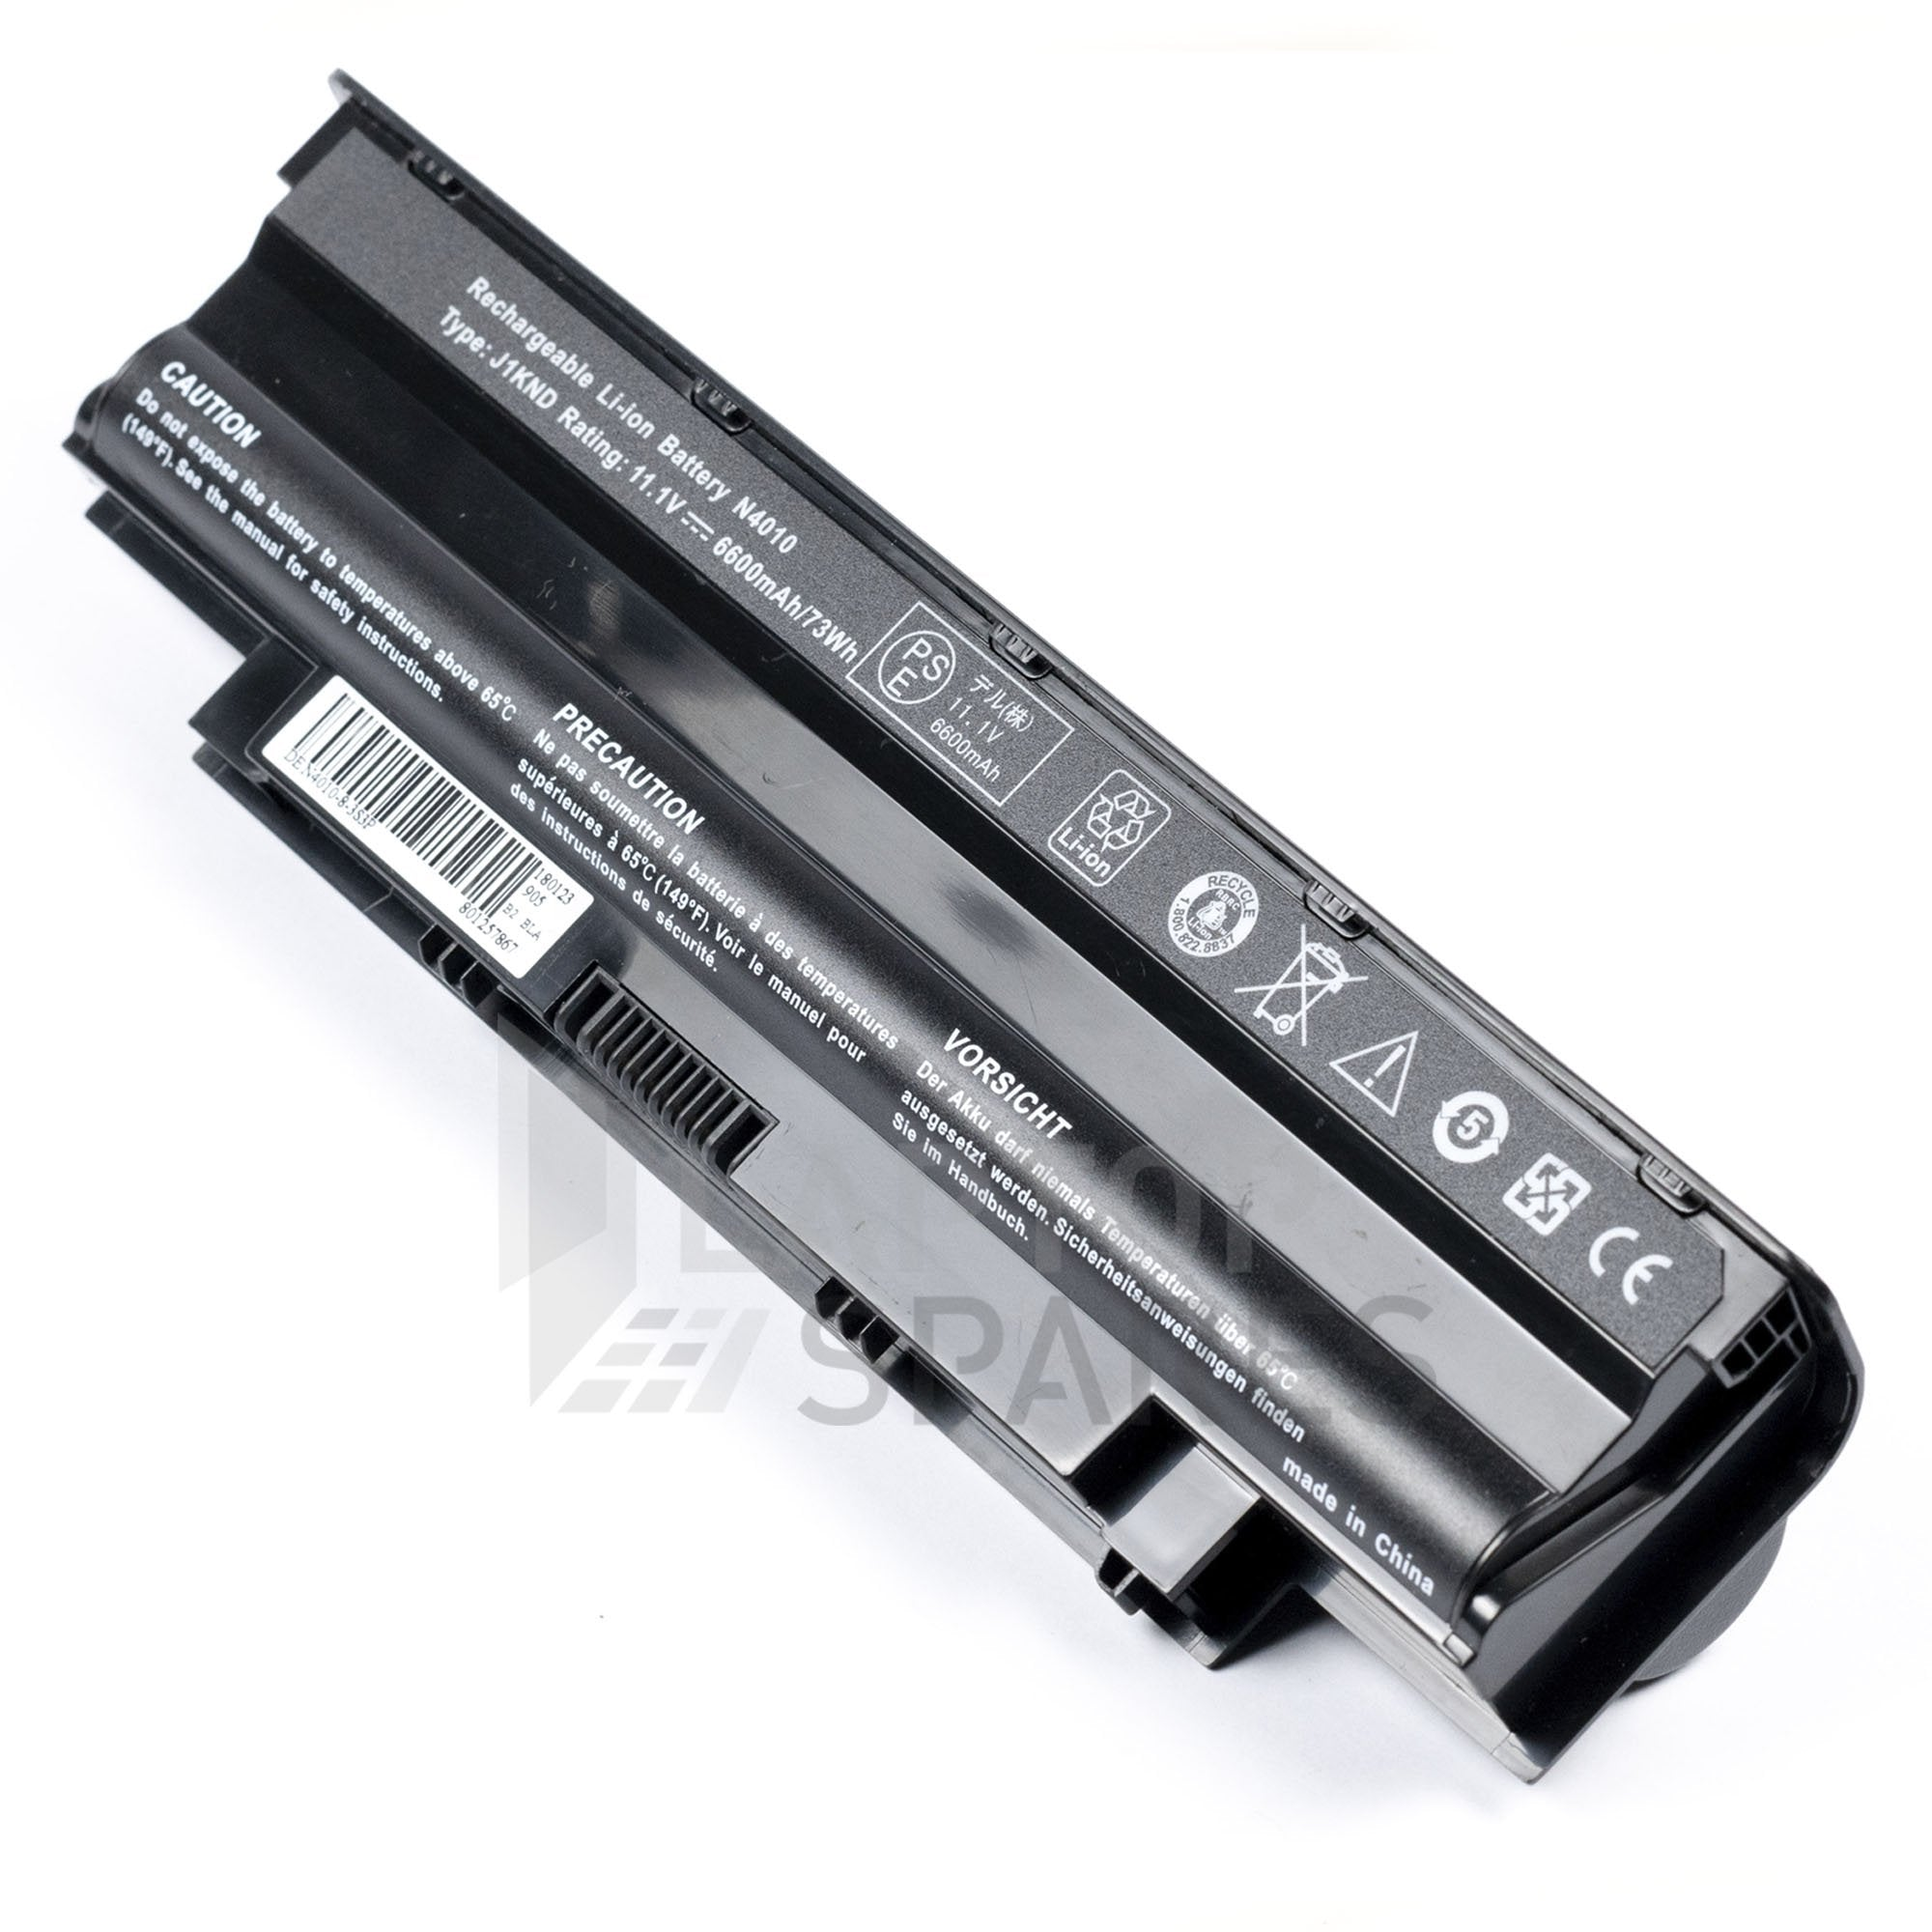 Dell Inspiron 14R N4010D-248 6600mAh 9 Cell Battery